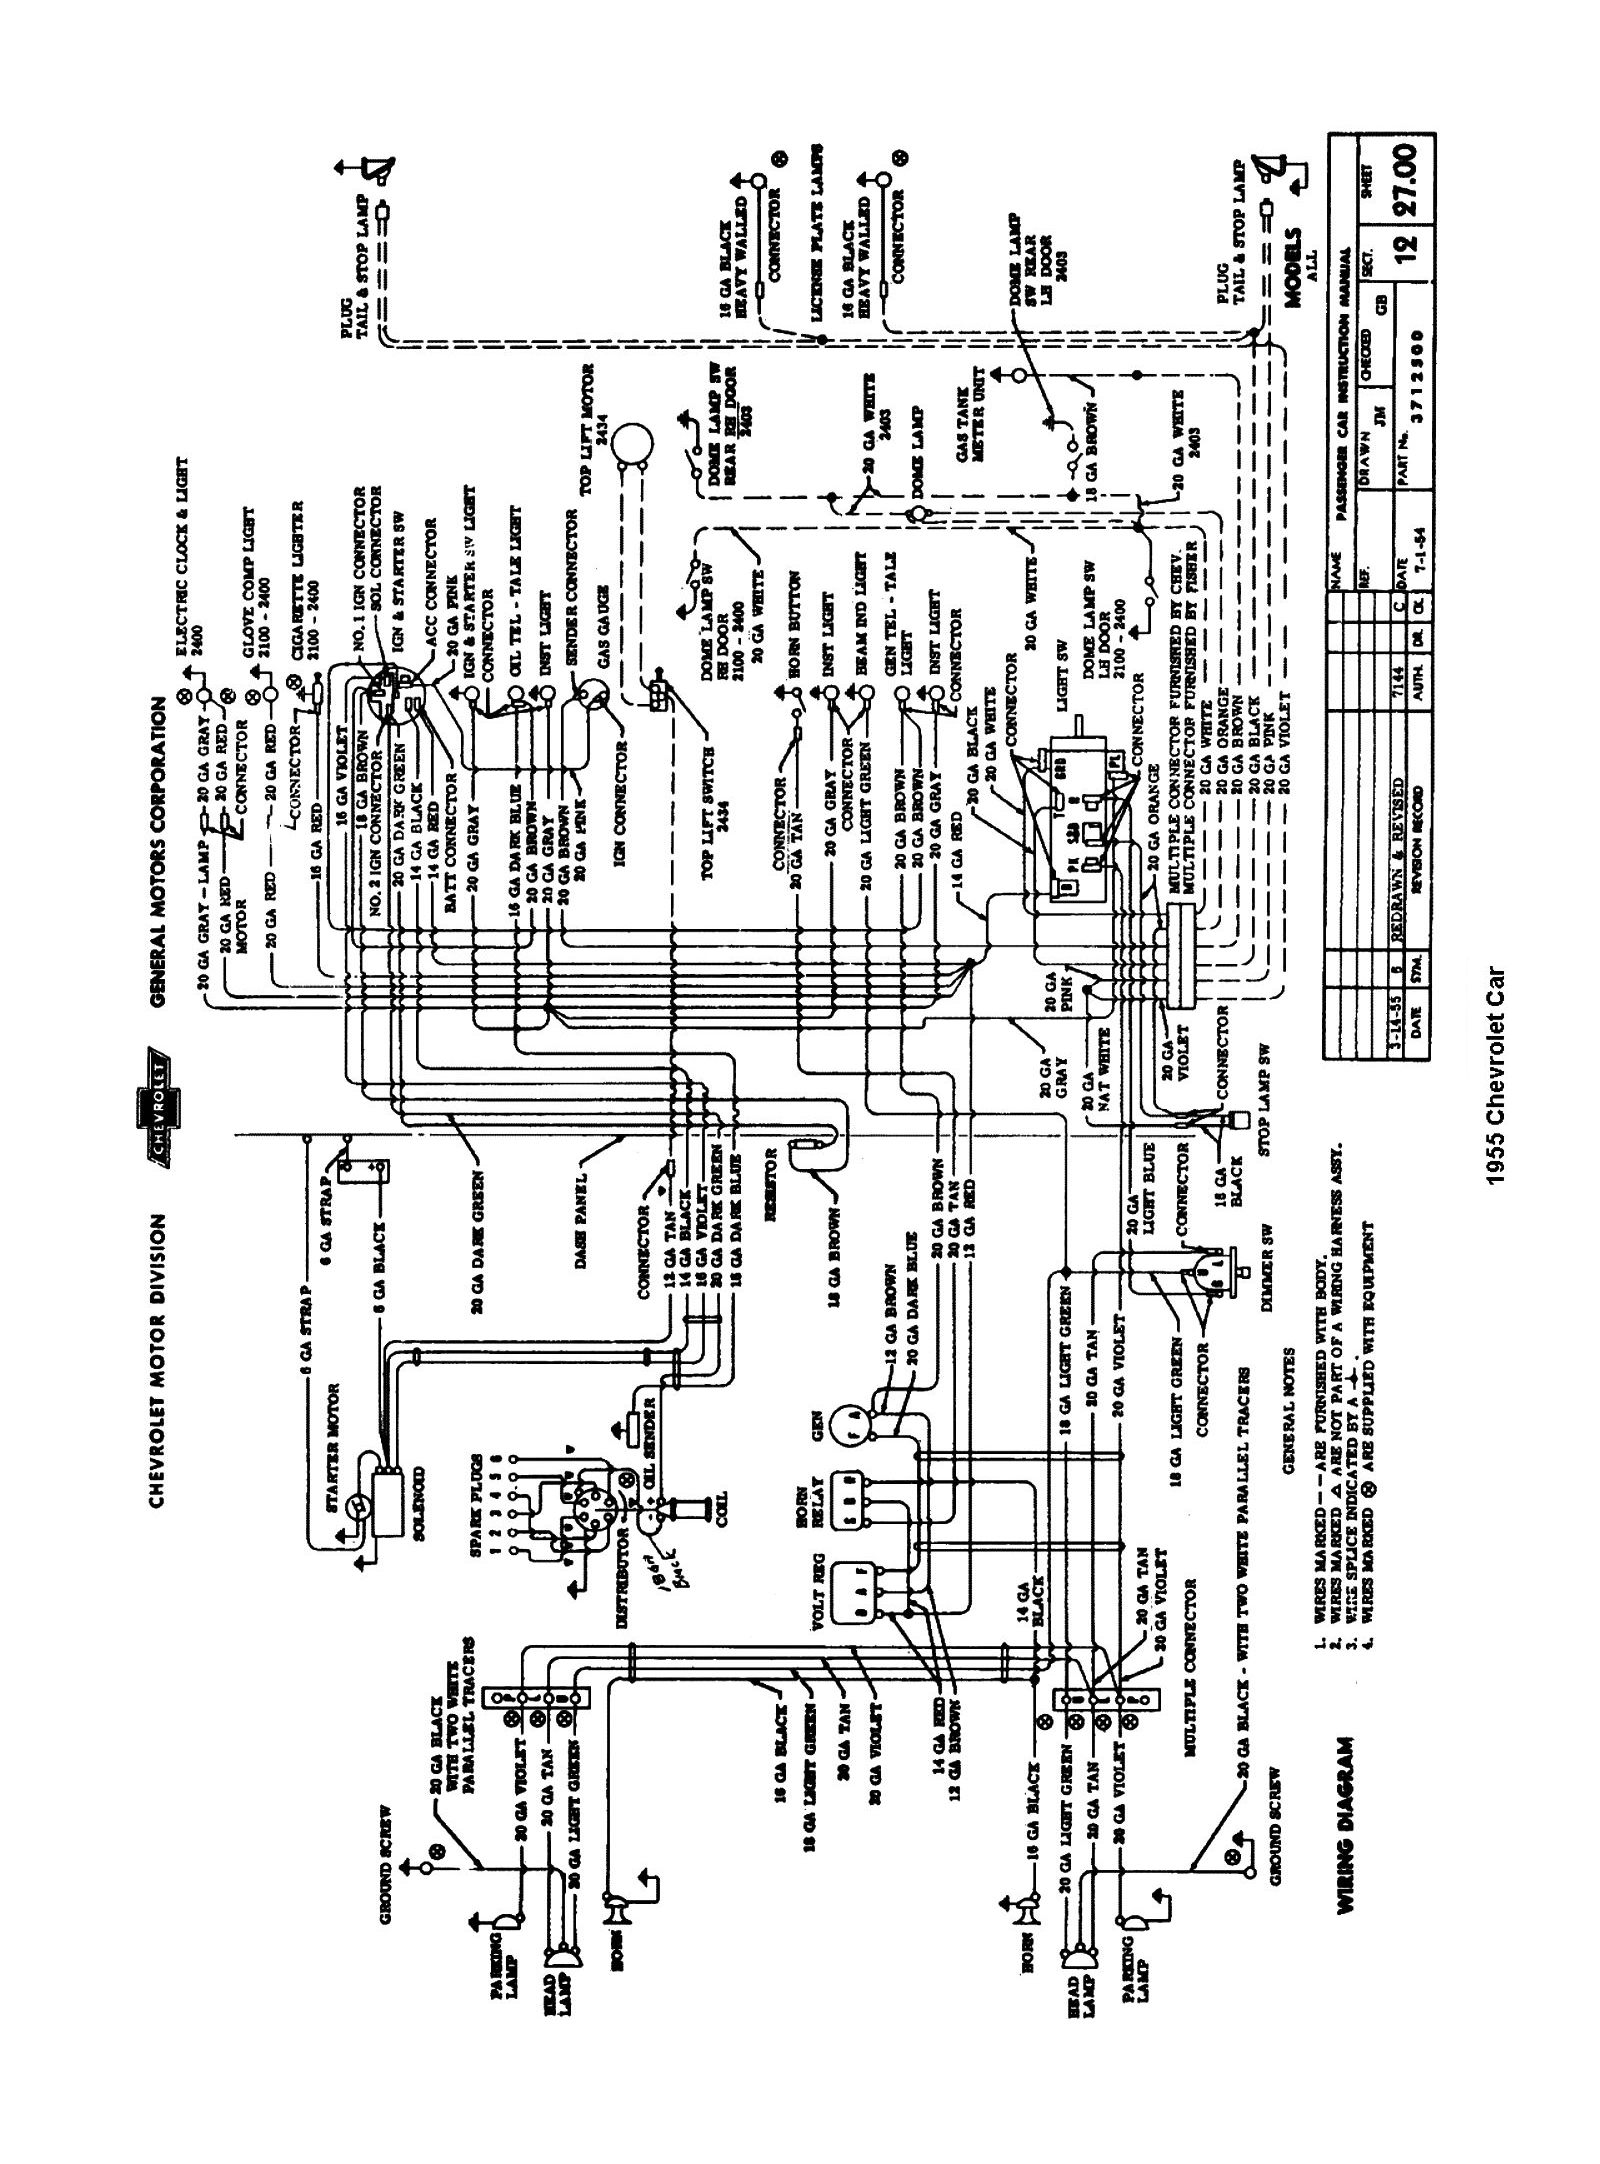 [QNCB_7524]  1955 Pontiac Turn Signal Wiring Diagram - Ceiling Fan Light Kit Wiring  Diagram for Wiring Diagram Schematics | Cadillac Wiring Diagram Free Download Schematic |  | Wiring Diagram Schematics